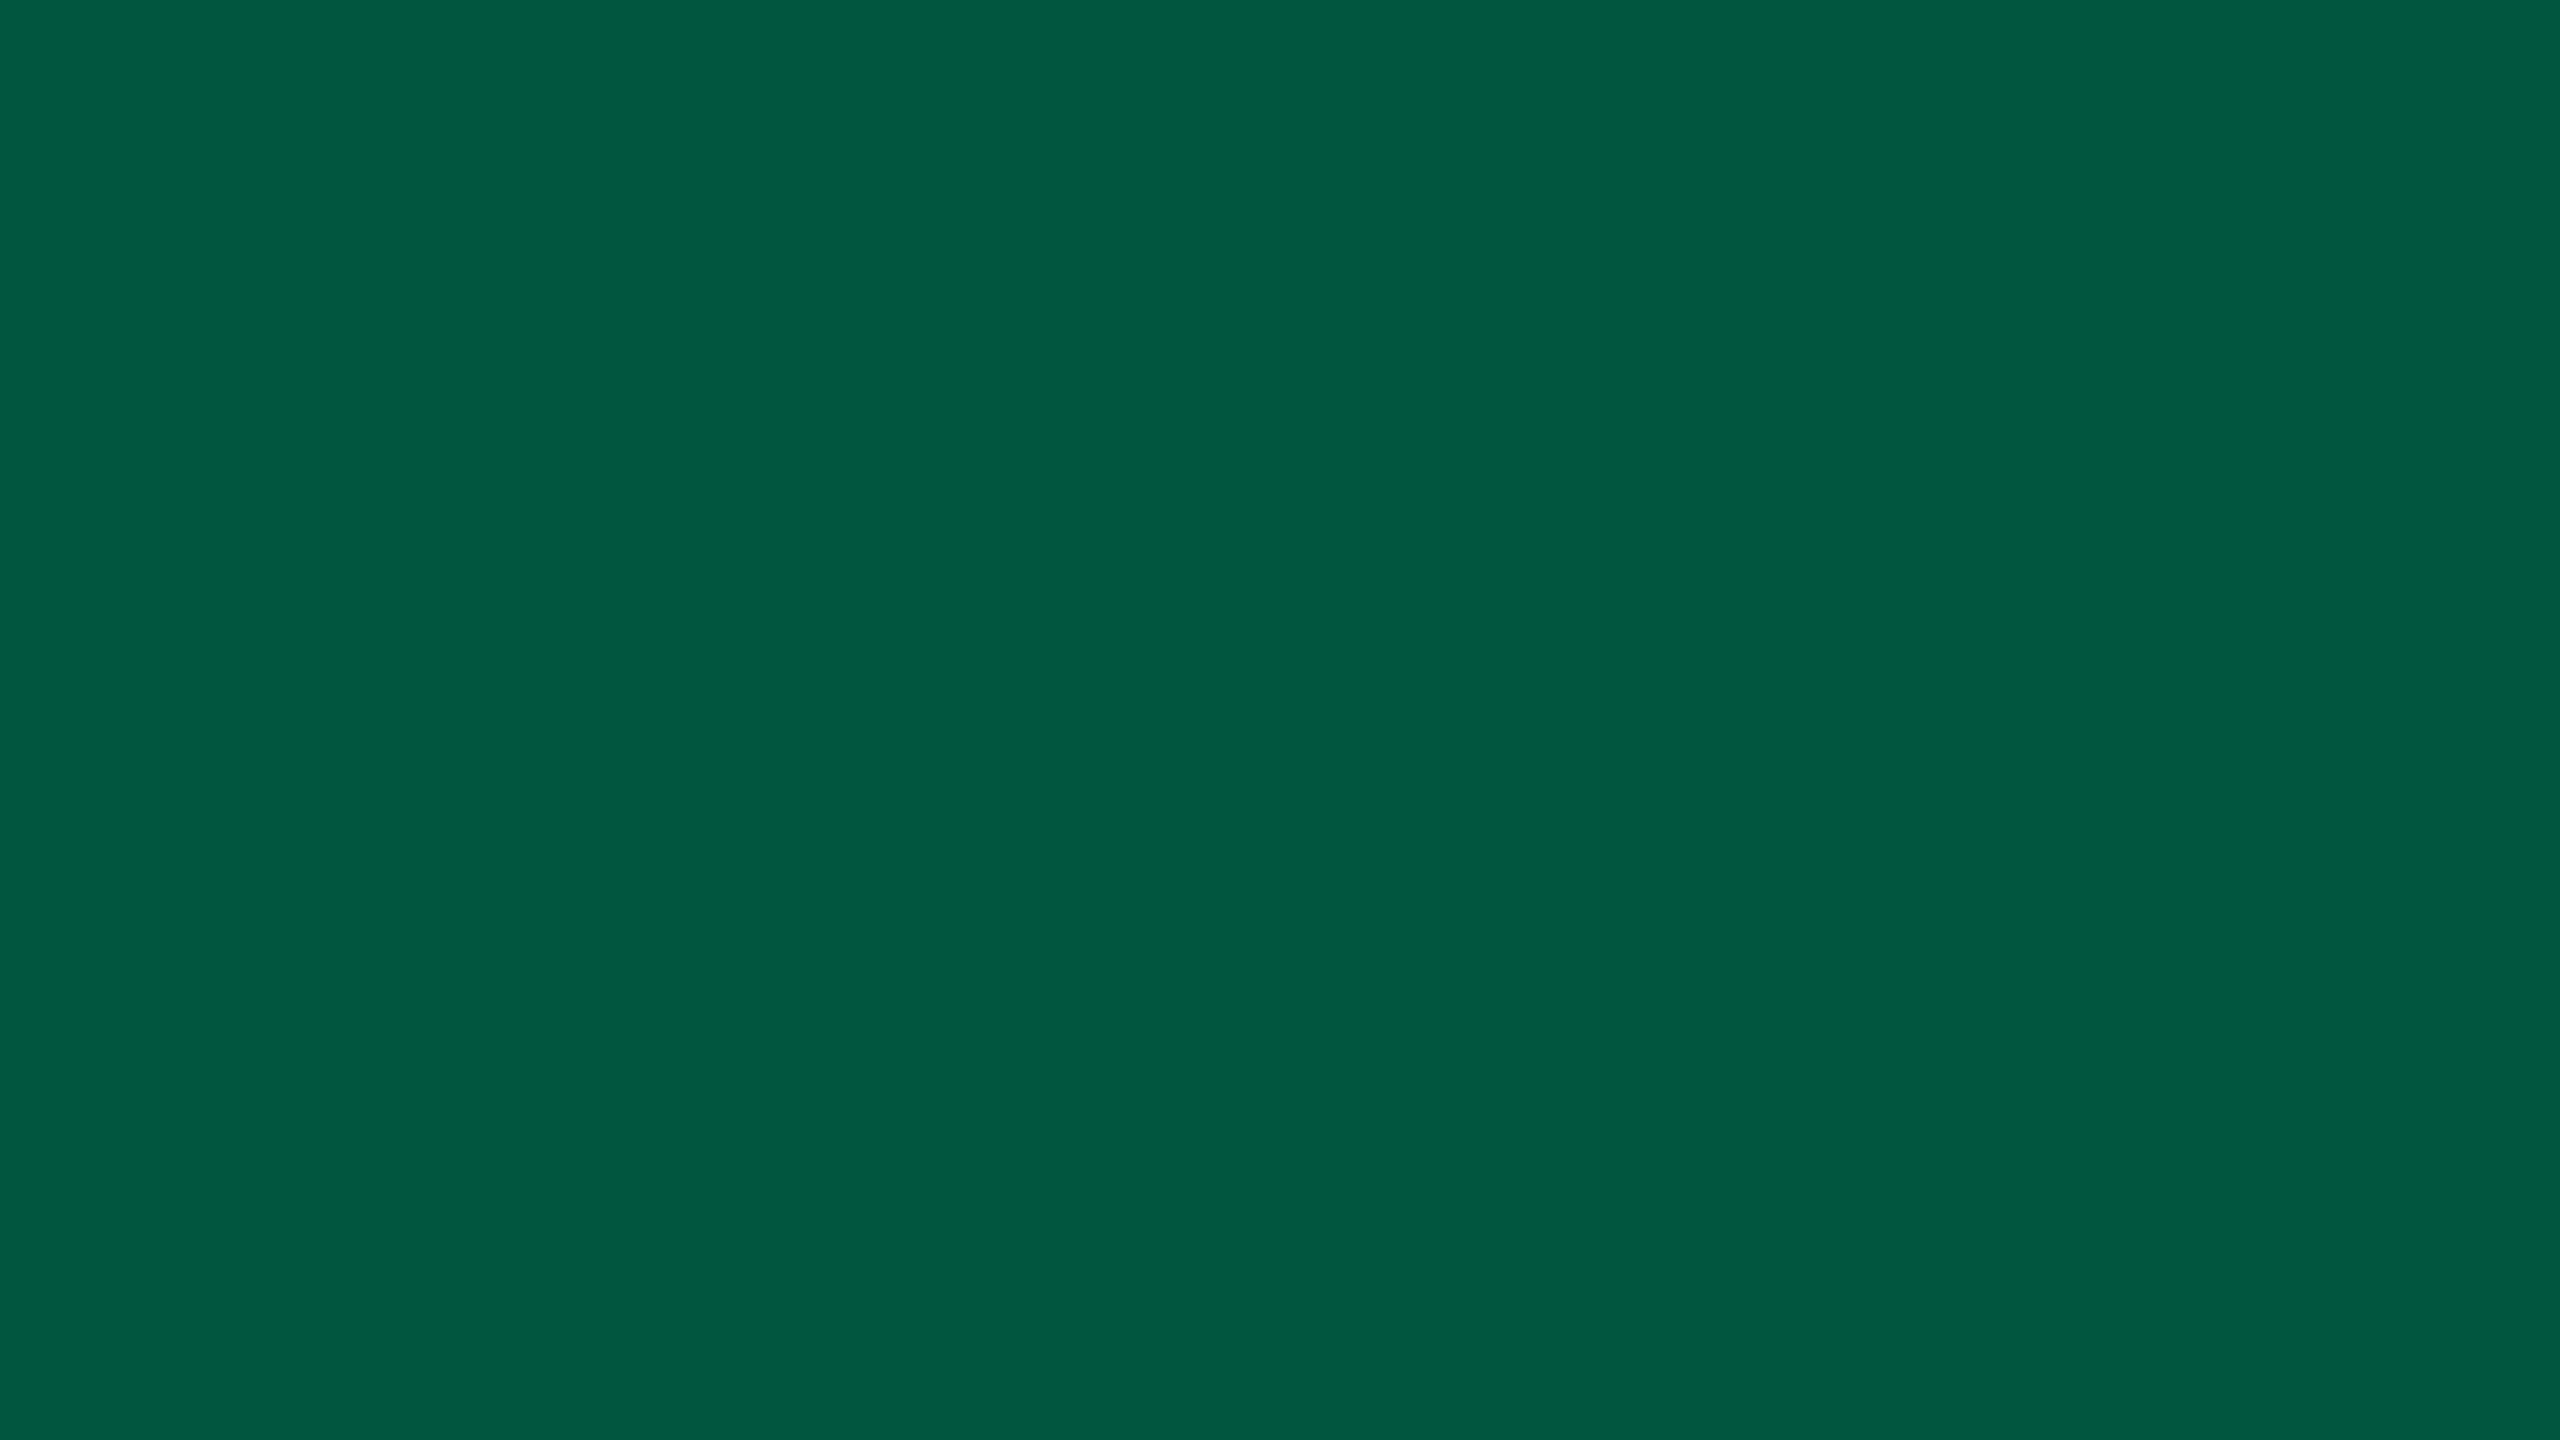 2560x1440 Sacramento State Green Solid Color Background